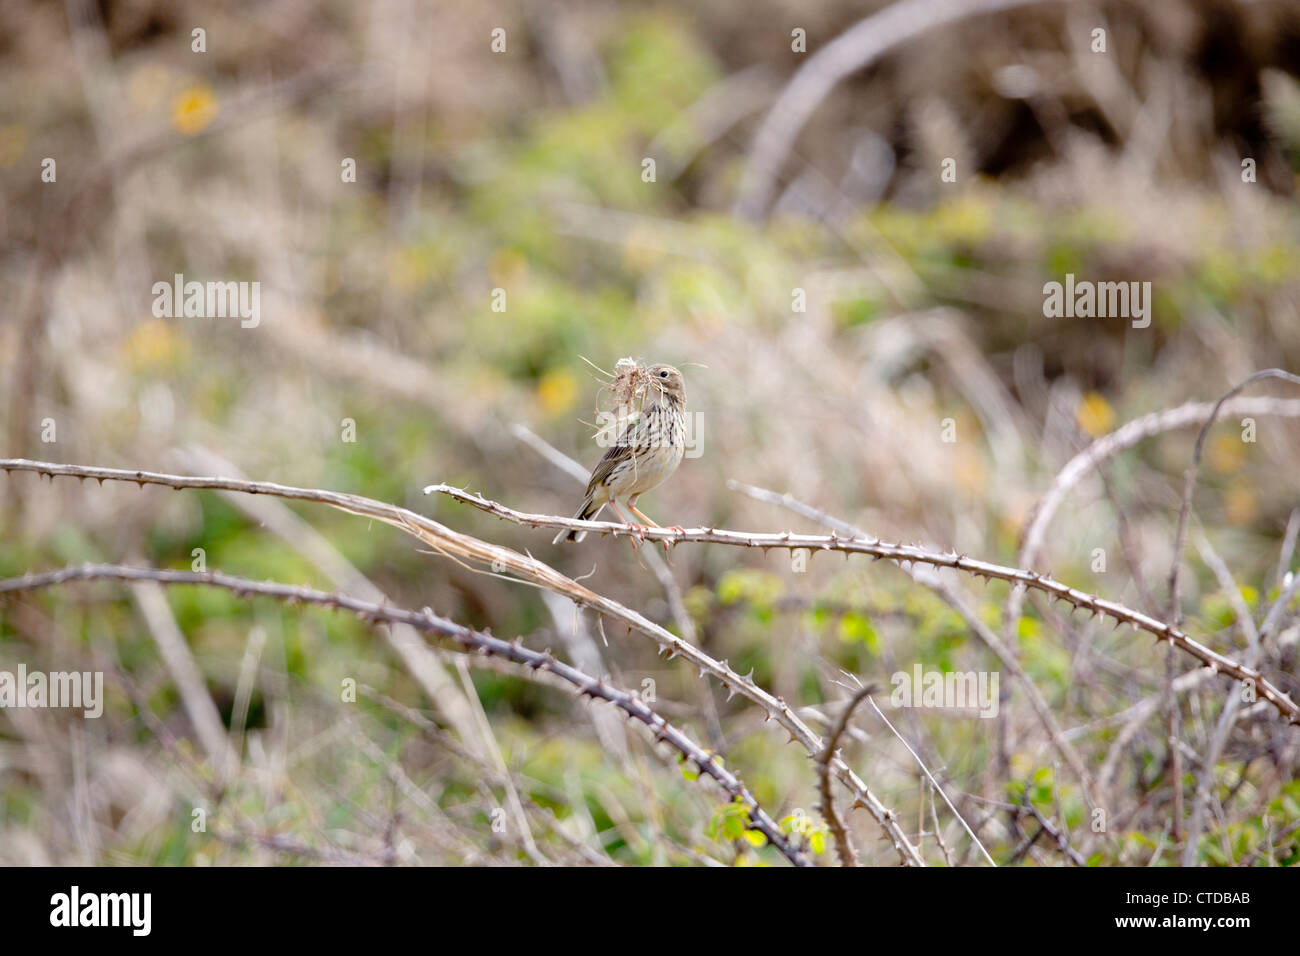 Meadow Pipit; Anthus pratensis; with nesting material; UK - Stock Image